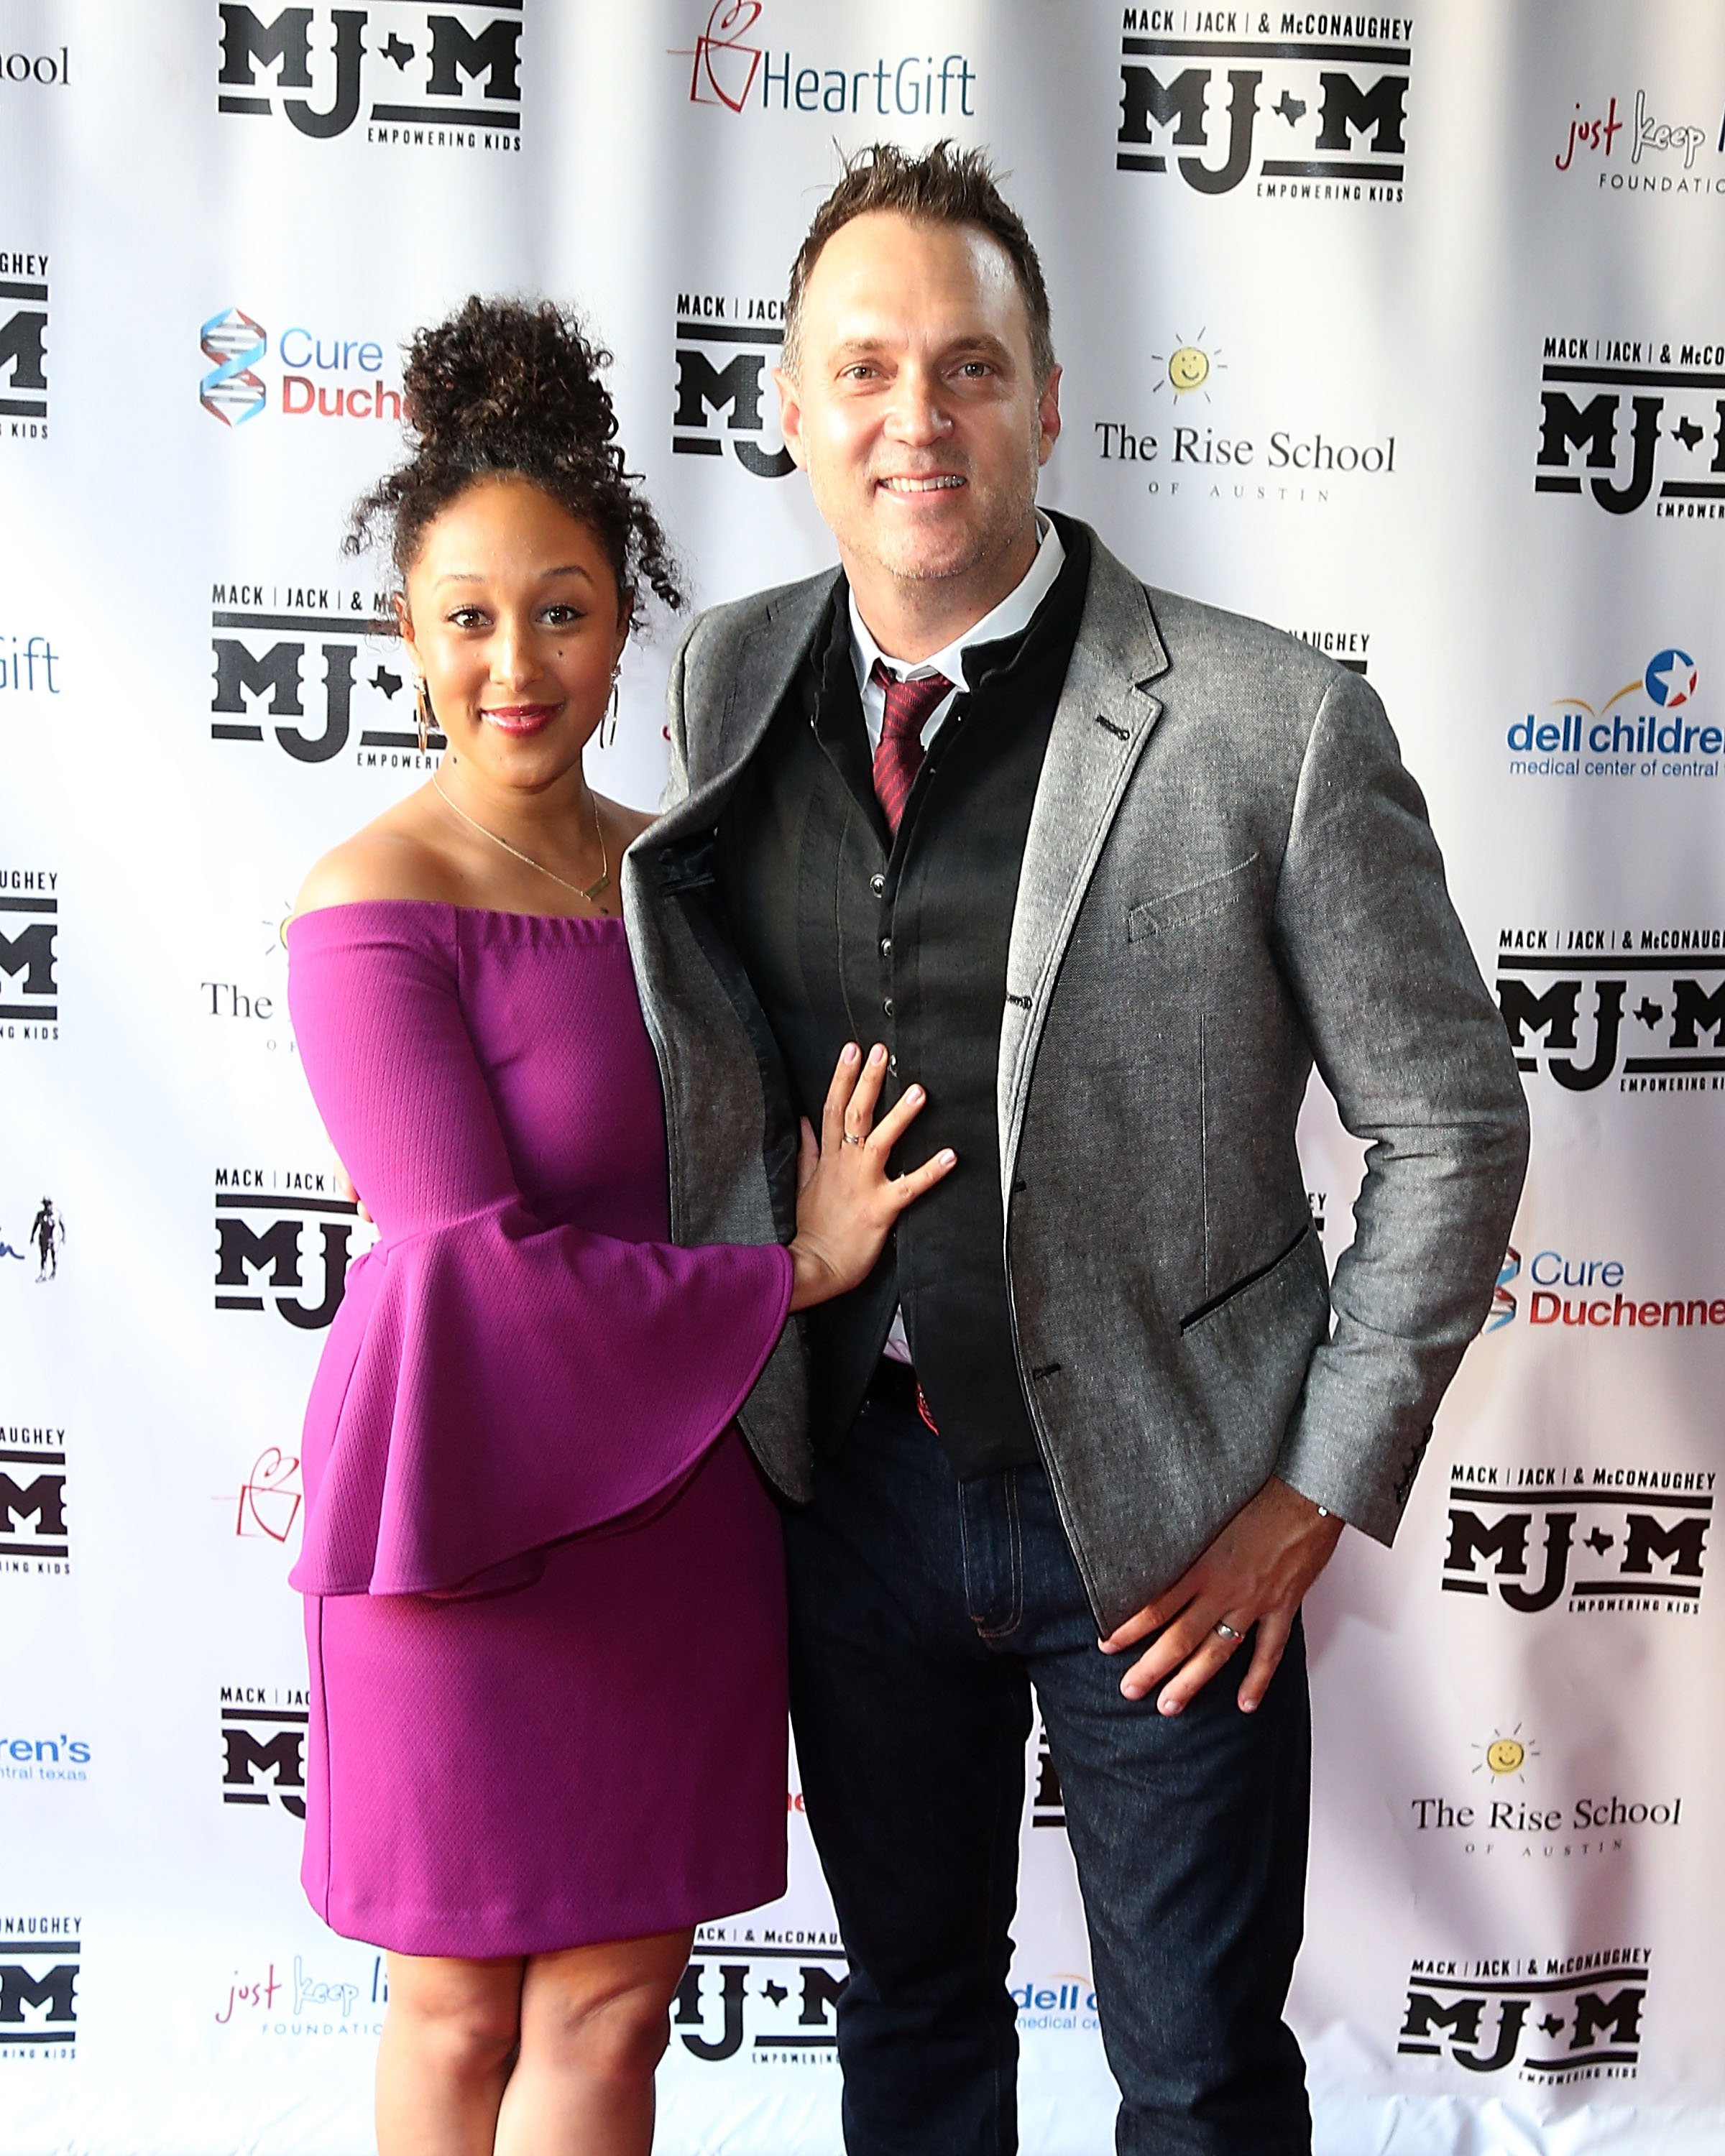 Tamera Mowry-Housley and Adam Housley at the Mack, Jack & McConaughey charity gala on April 12, 2018 in Texas. |Photo: Getty Images